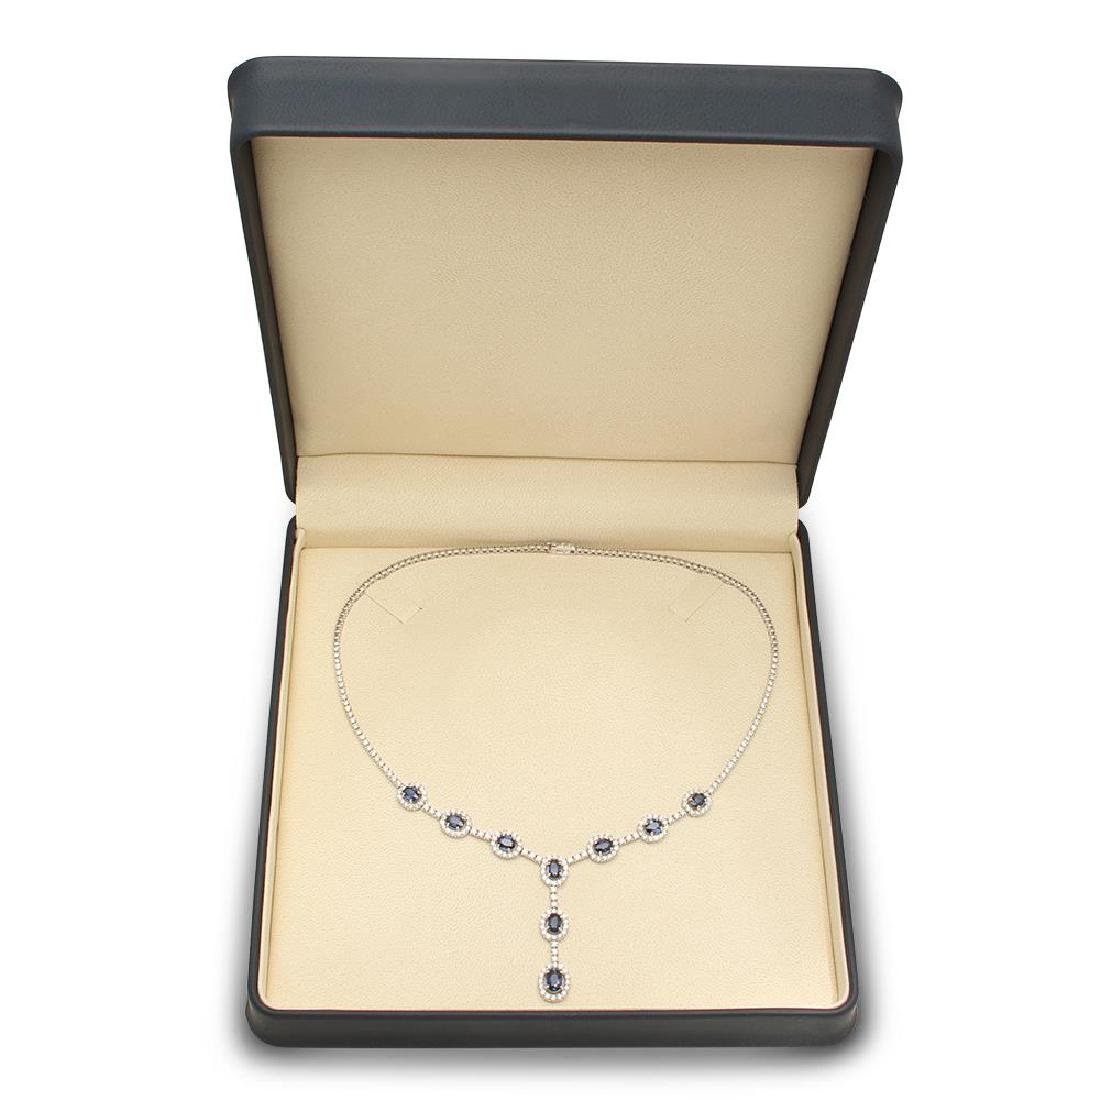 14K Gold 5.02ct Sapphire 5.67cts Diamond Necklace - 4